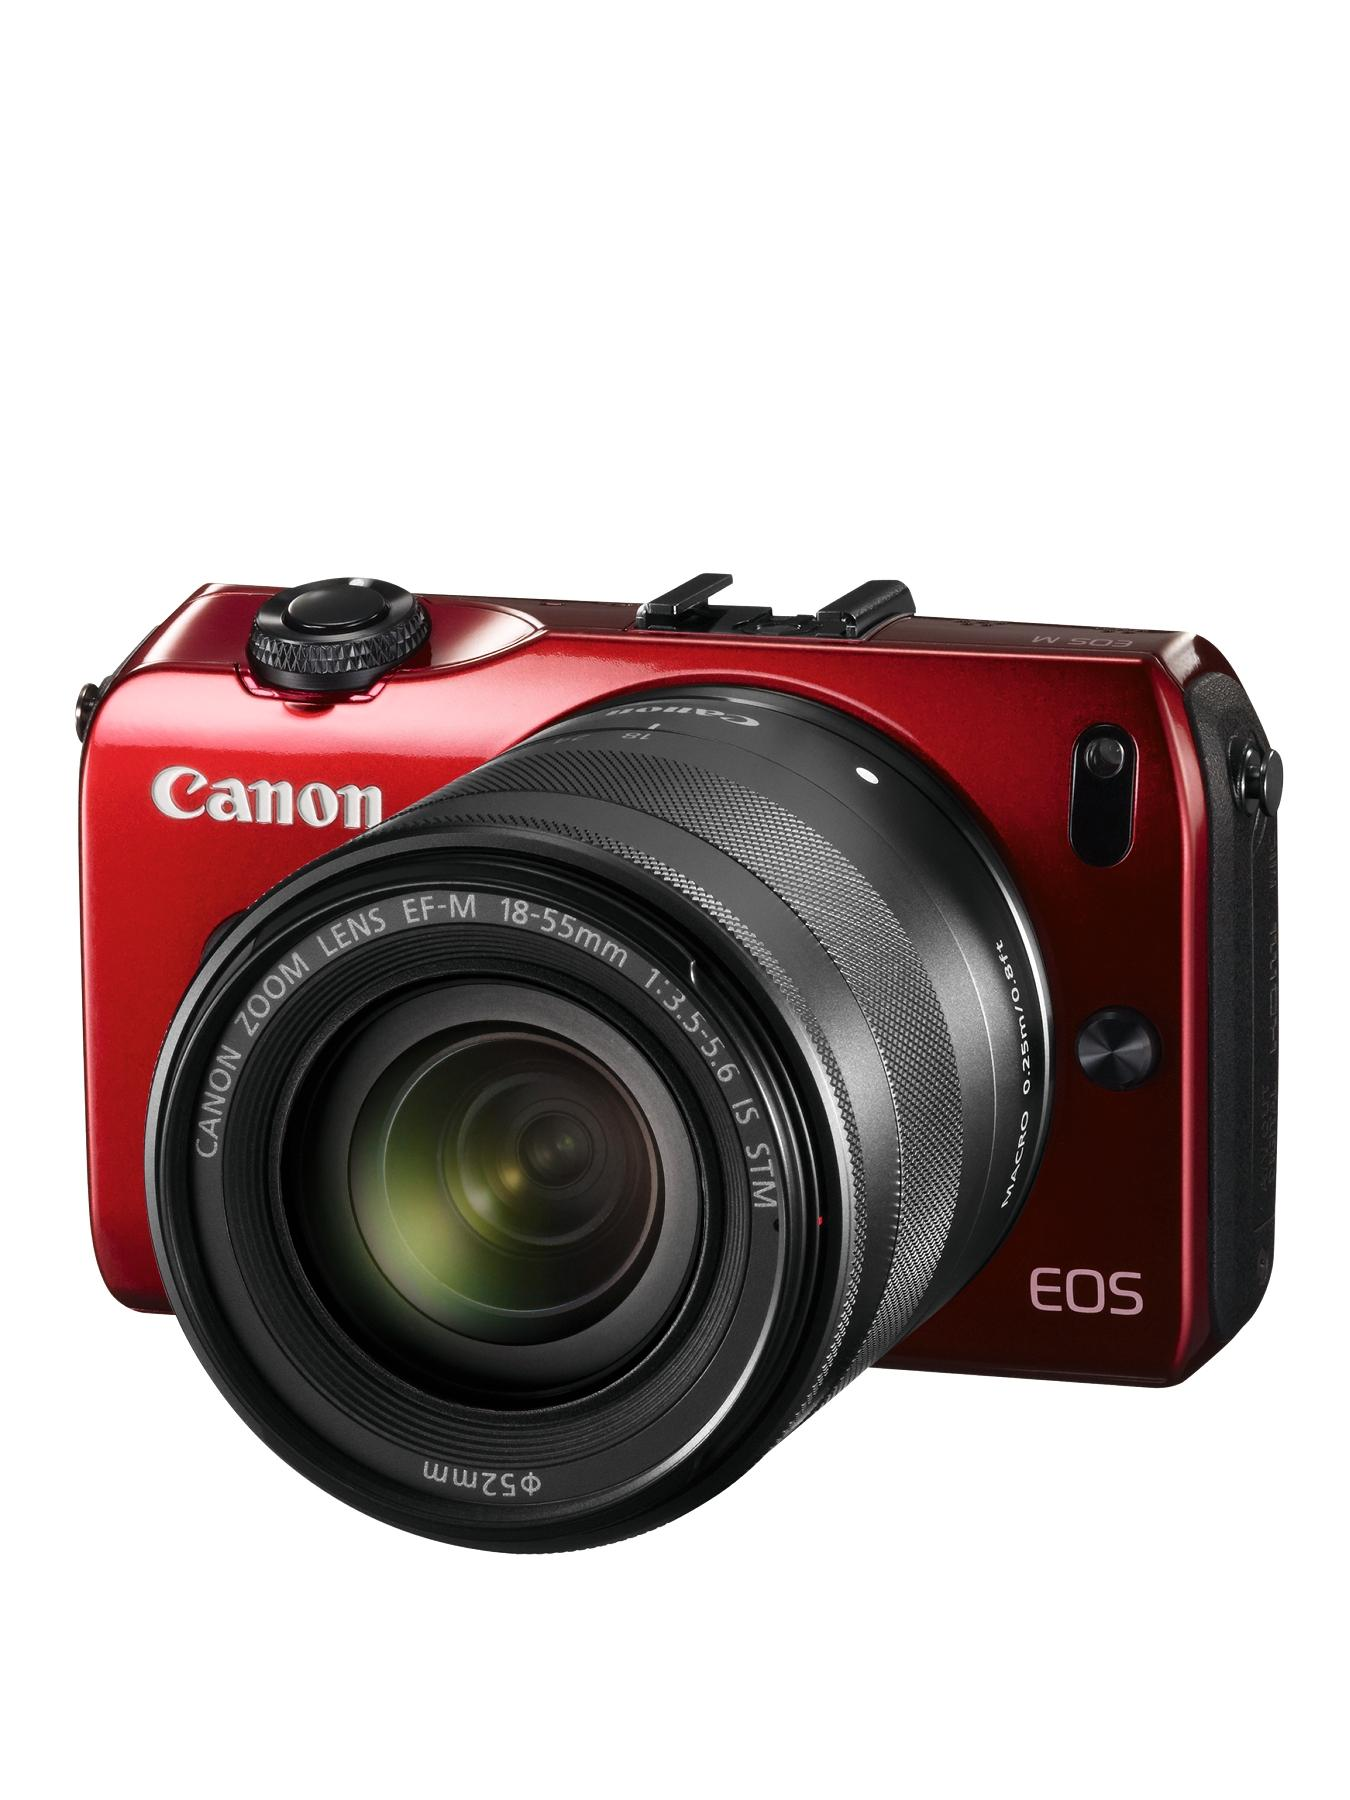 Canon EOS M 18 Megapixel Compact System with 18-55mm Lens - Red